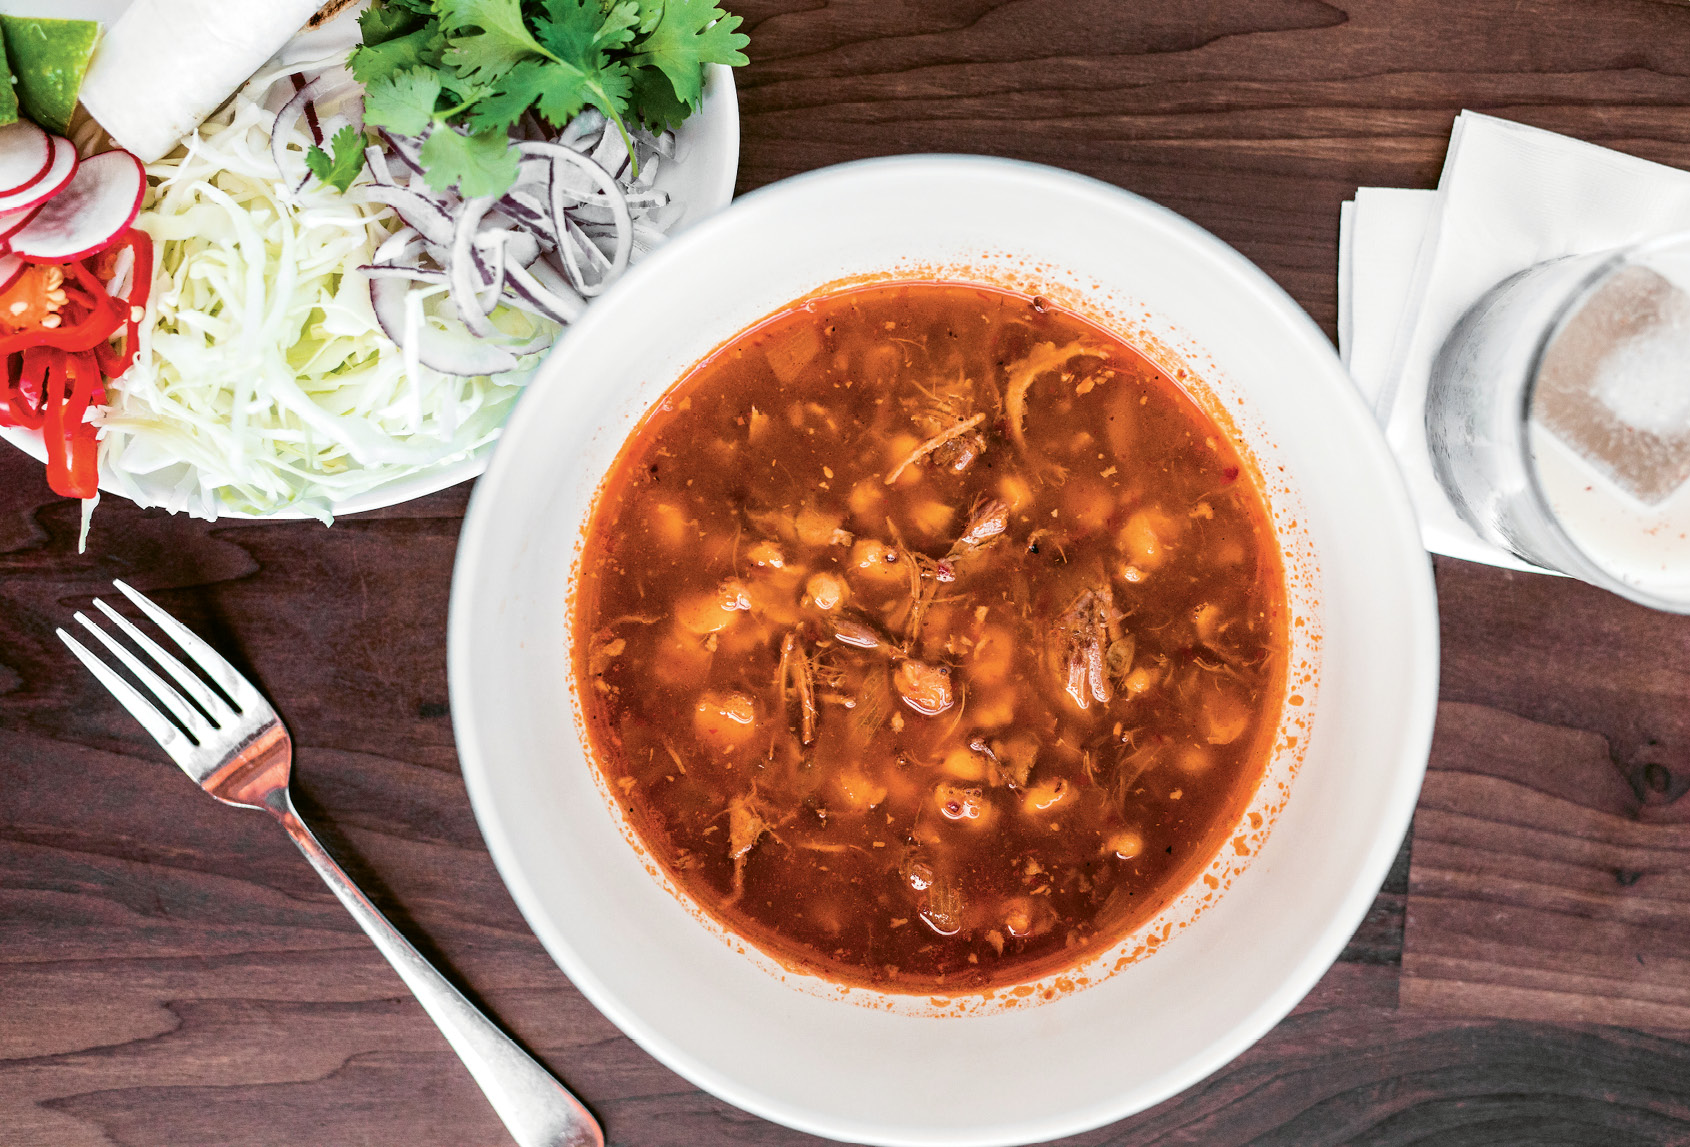 Pozole rojo, a hearty soup with pork shoulder and hominy, awaits fresh toppings.